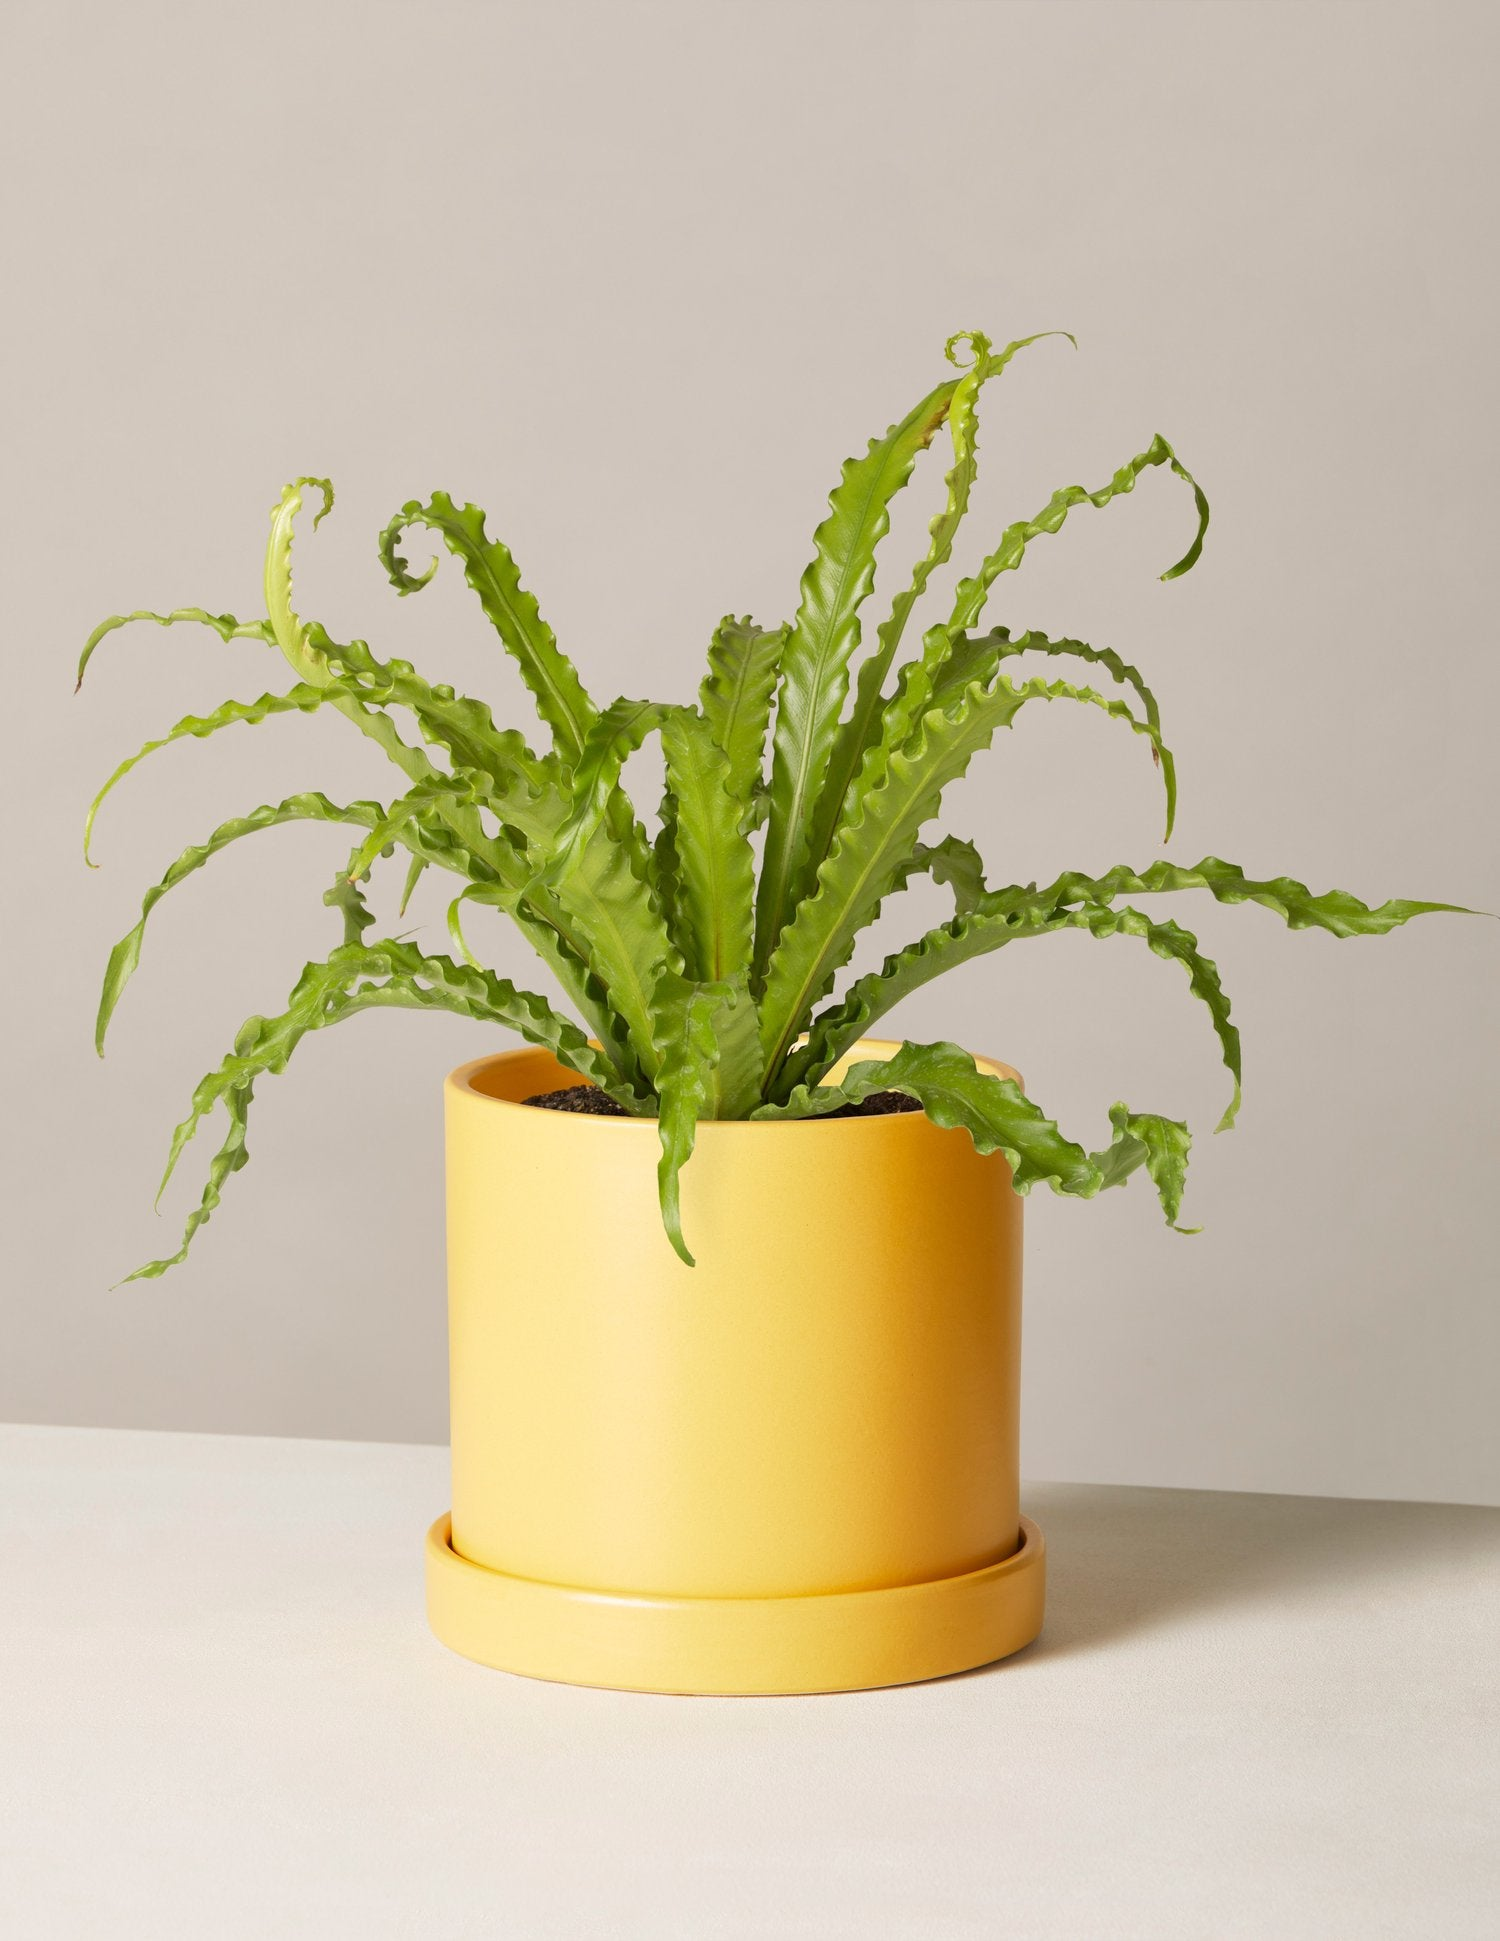 Indoor Potted Plants Delivered to Your Door – The Sill on attractions near me, beauty salon near me, fishing near me, swimming pool near me, gardens near me, factories near me, sauna near me, beach near me, malls near me, lounges near me,